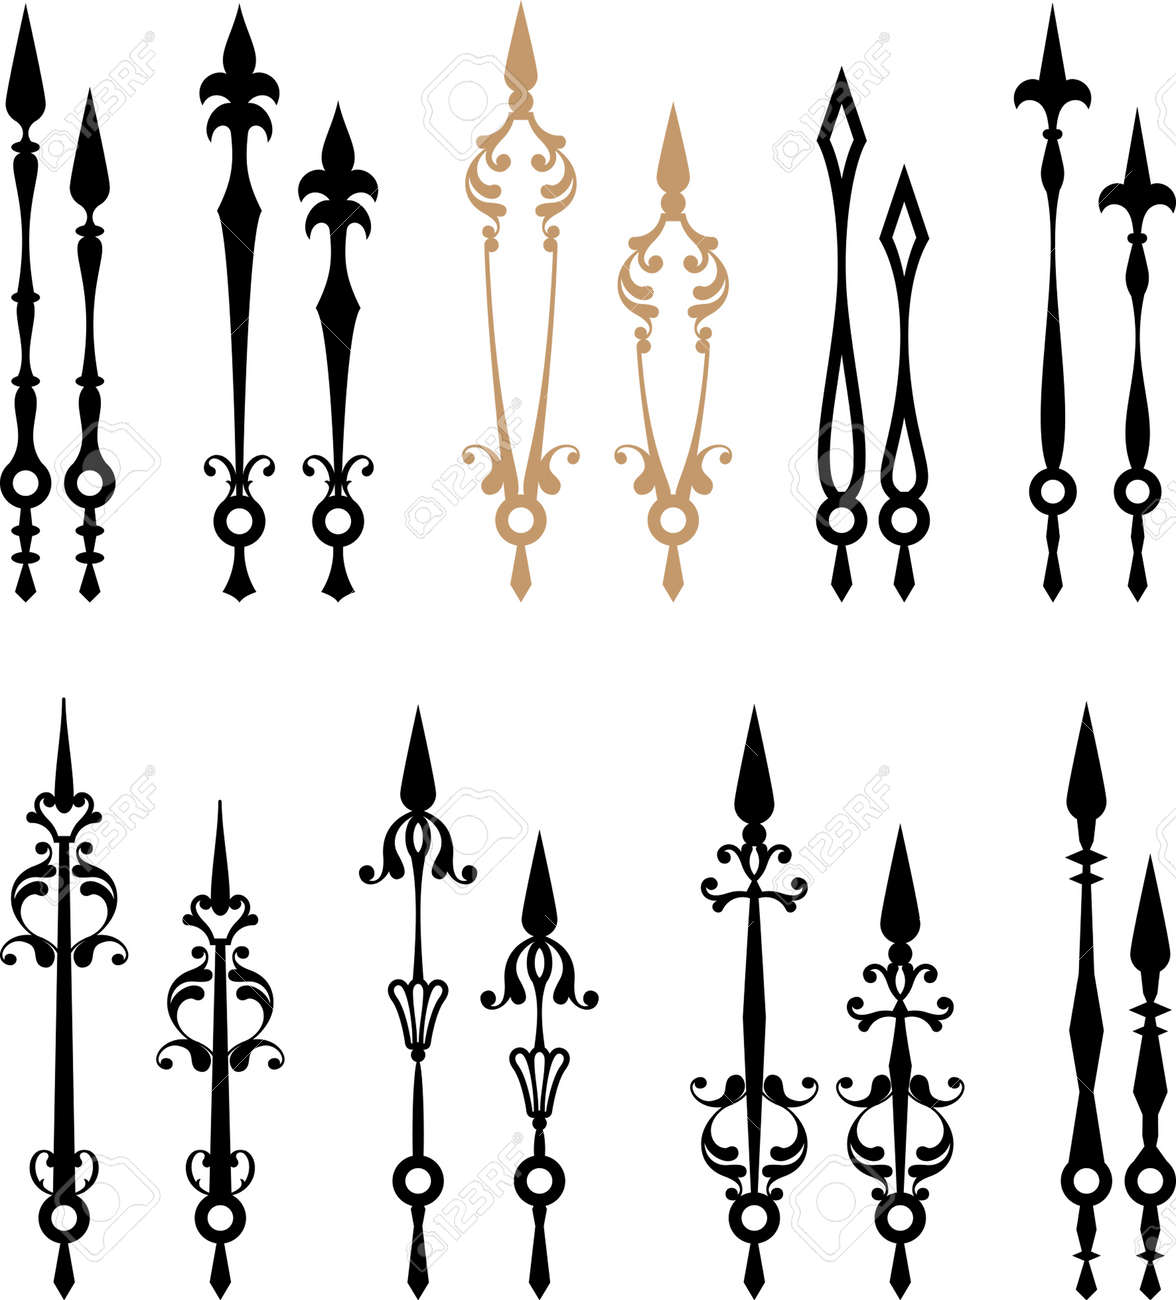 Clock Hands Arms Vector Art Stock Photo, Picture And Royalty Free ...